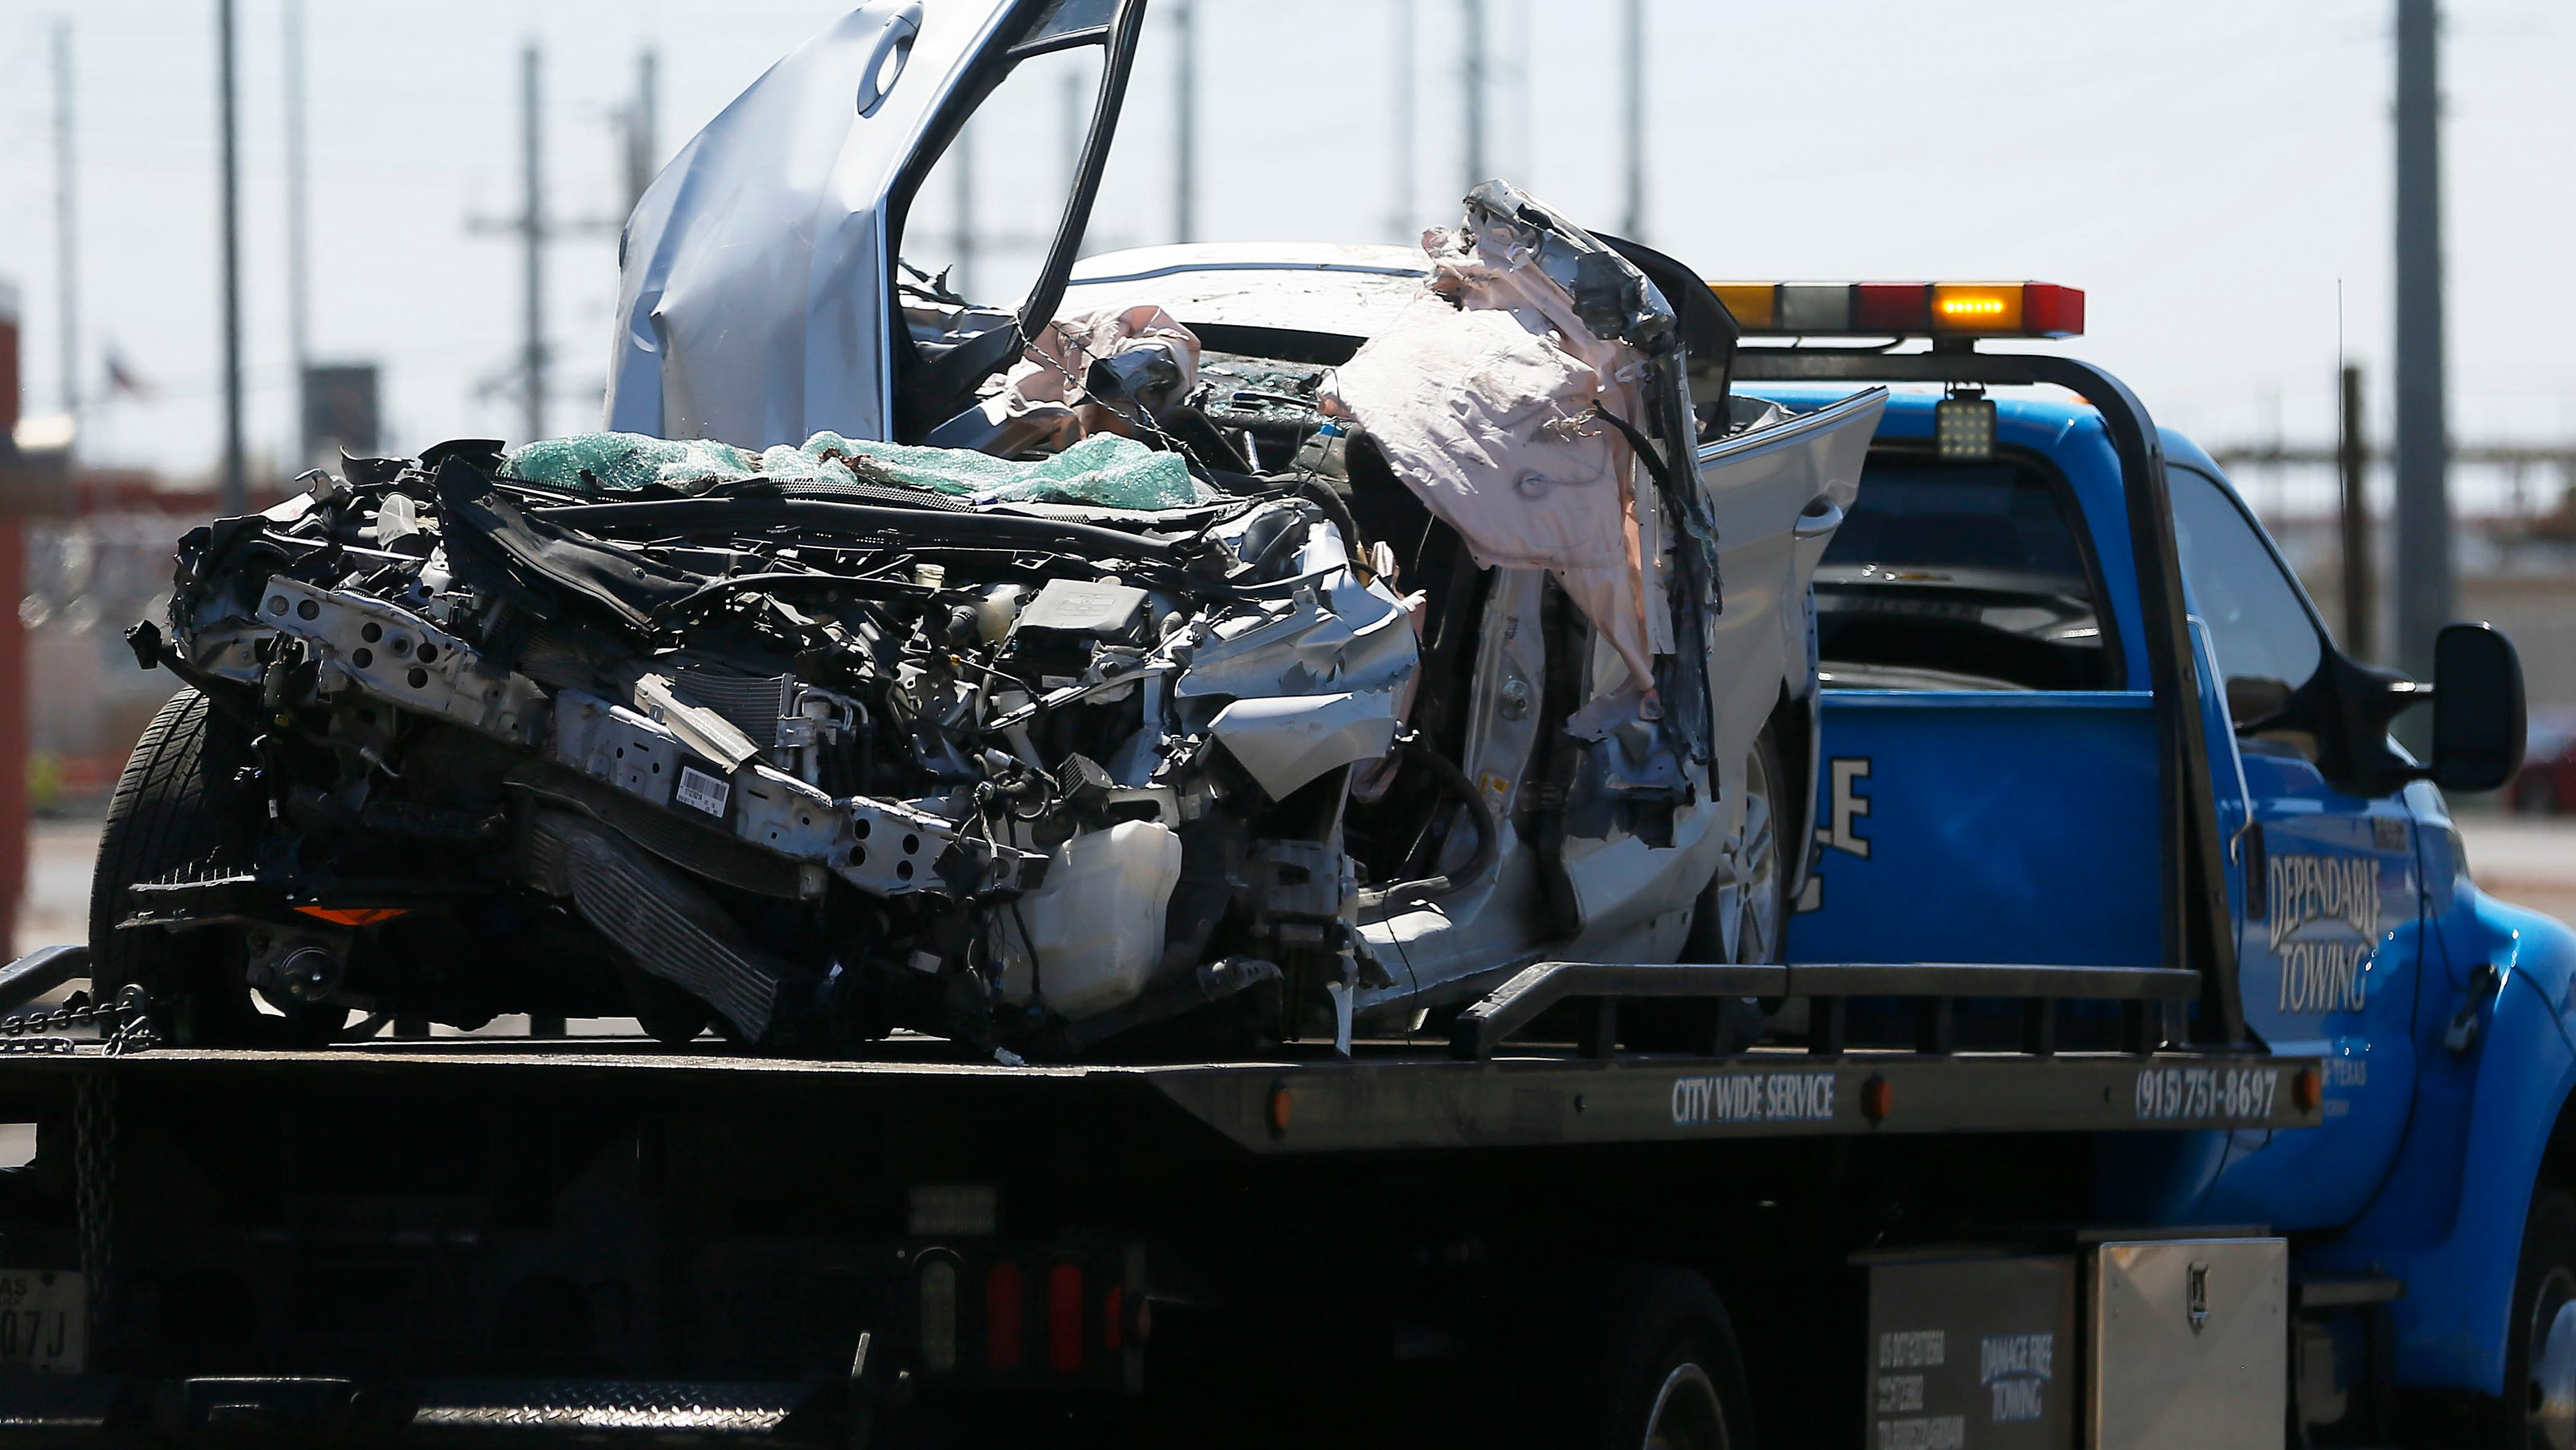 753236e1 86b8 47c2 9aca e3f349266318 Border Patrol crash 013 JPG?crop=4191,2358,x0,y212&width=3200&height=1801&format=pjpg&auto=webp.'